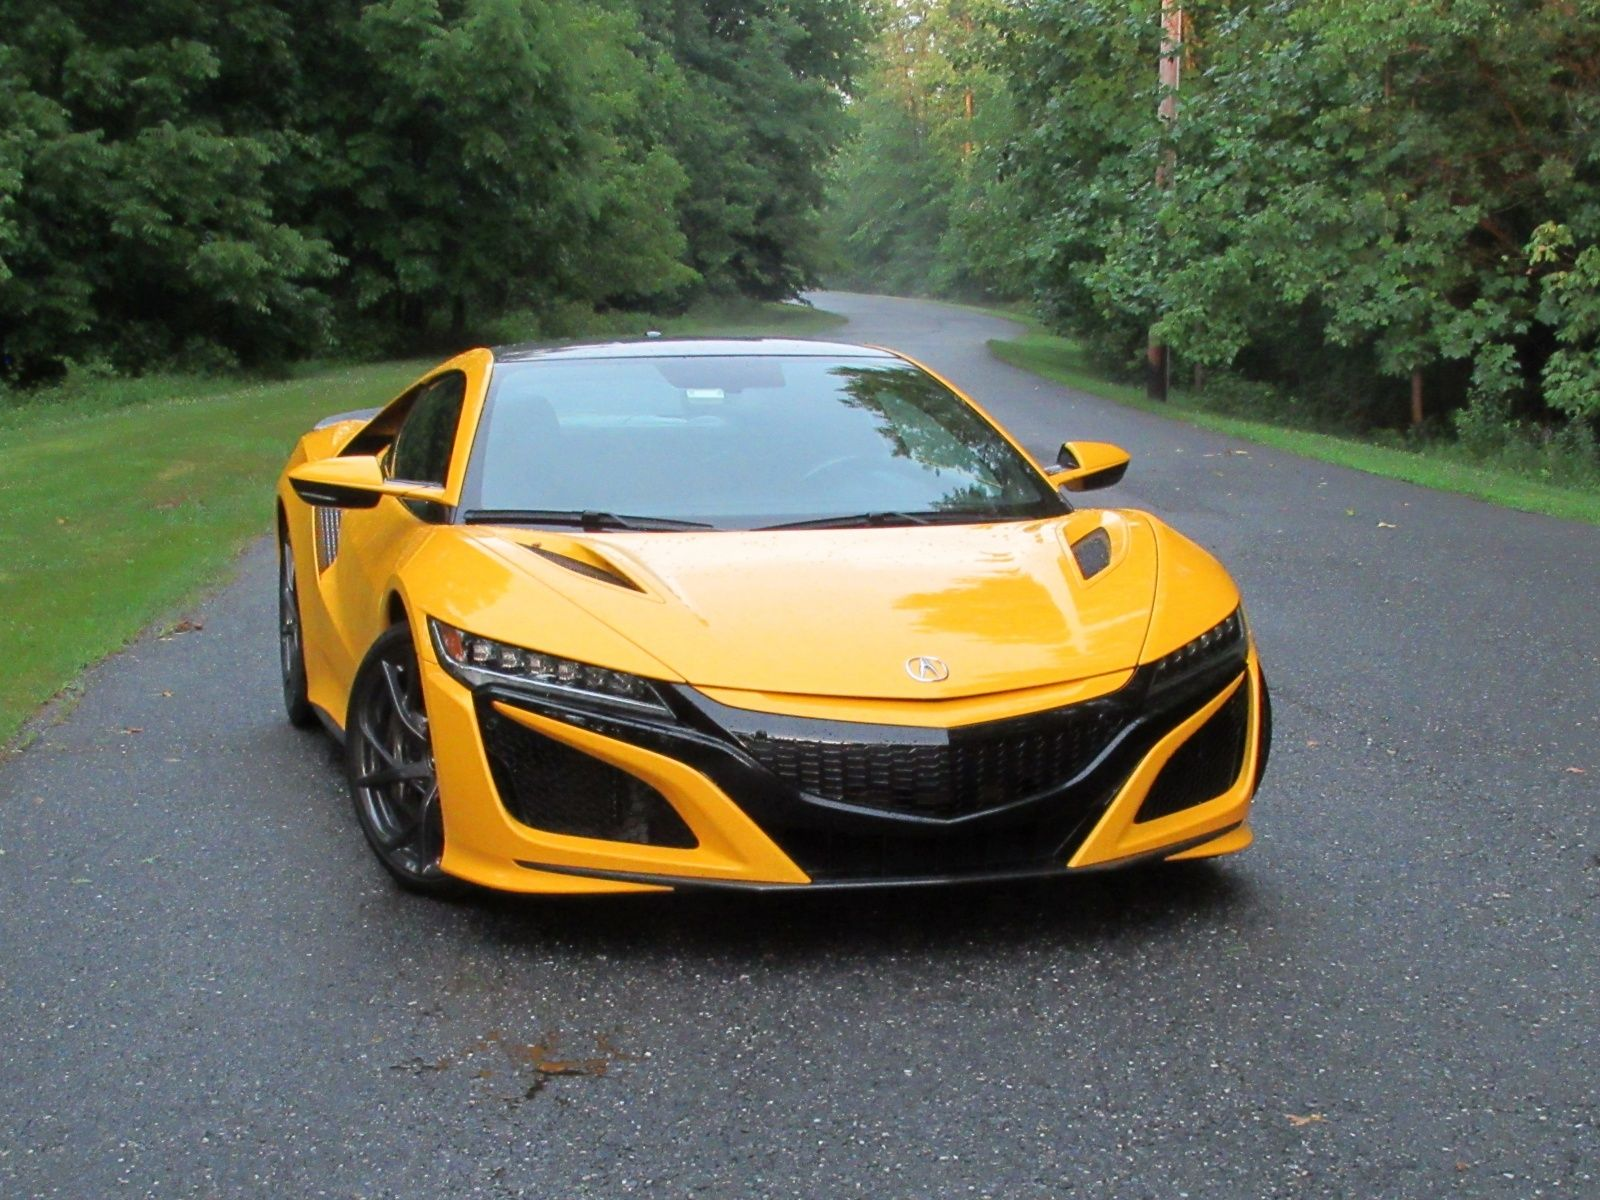 Acura Nsx Driven Review And Impressions Top Speed In 2020 Acura Nsx Acura Sports Car Acura